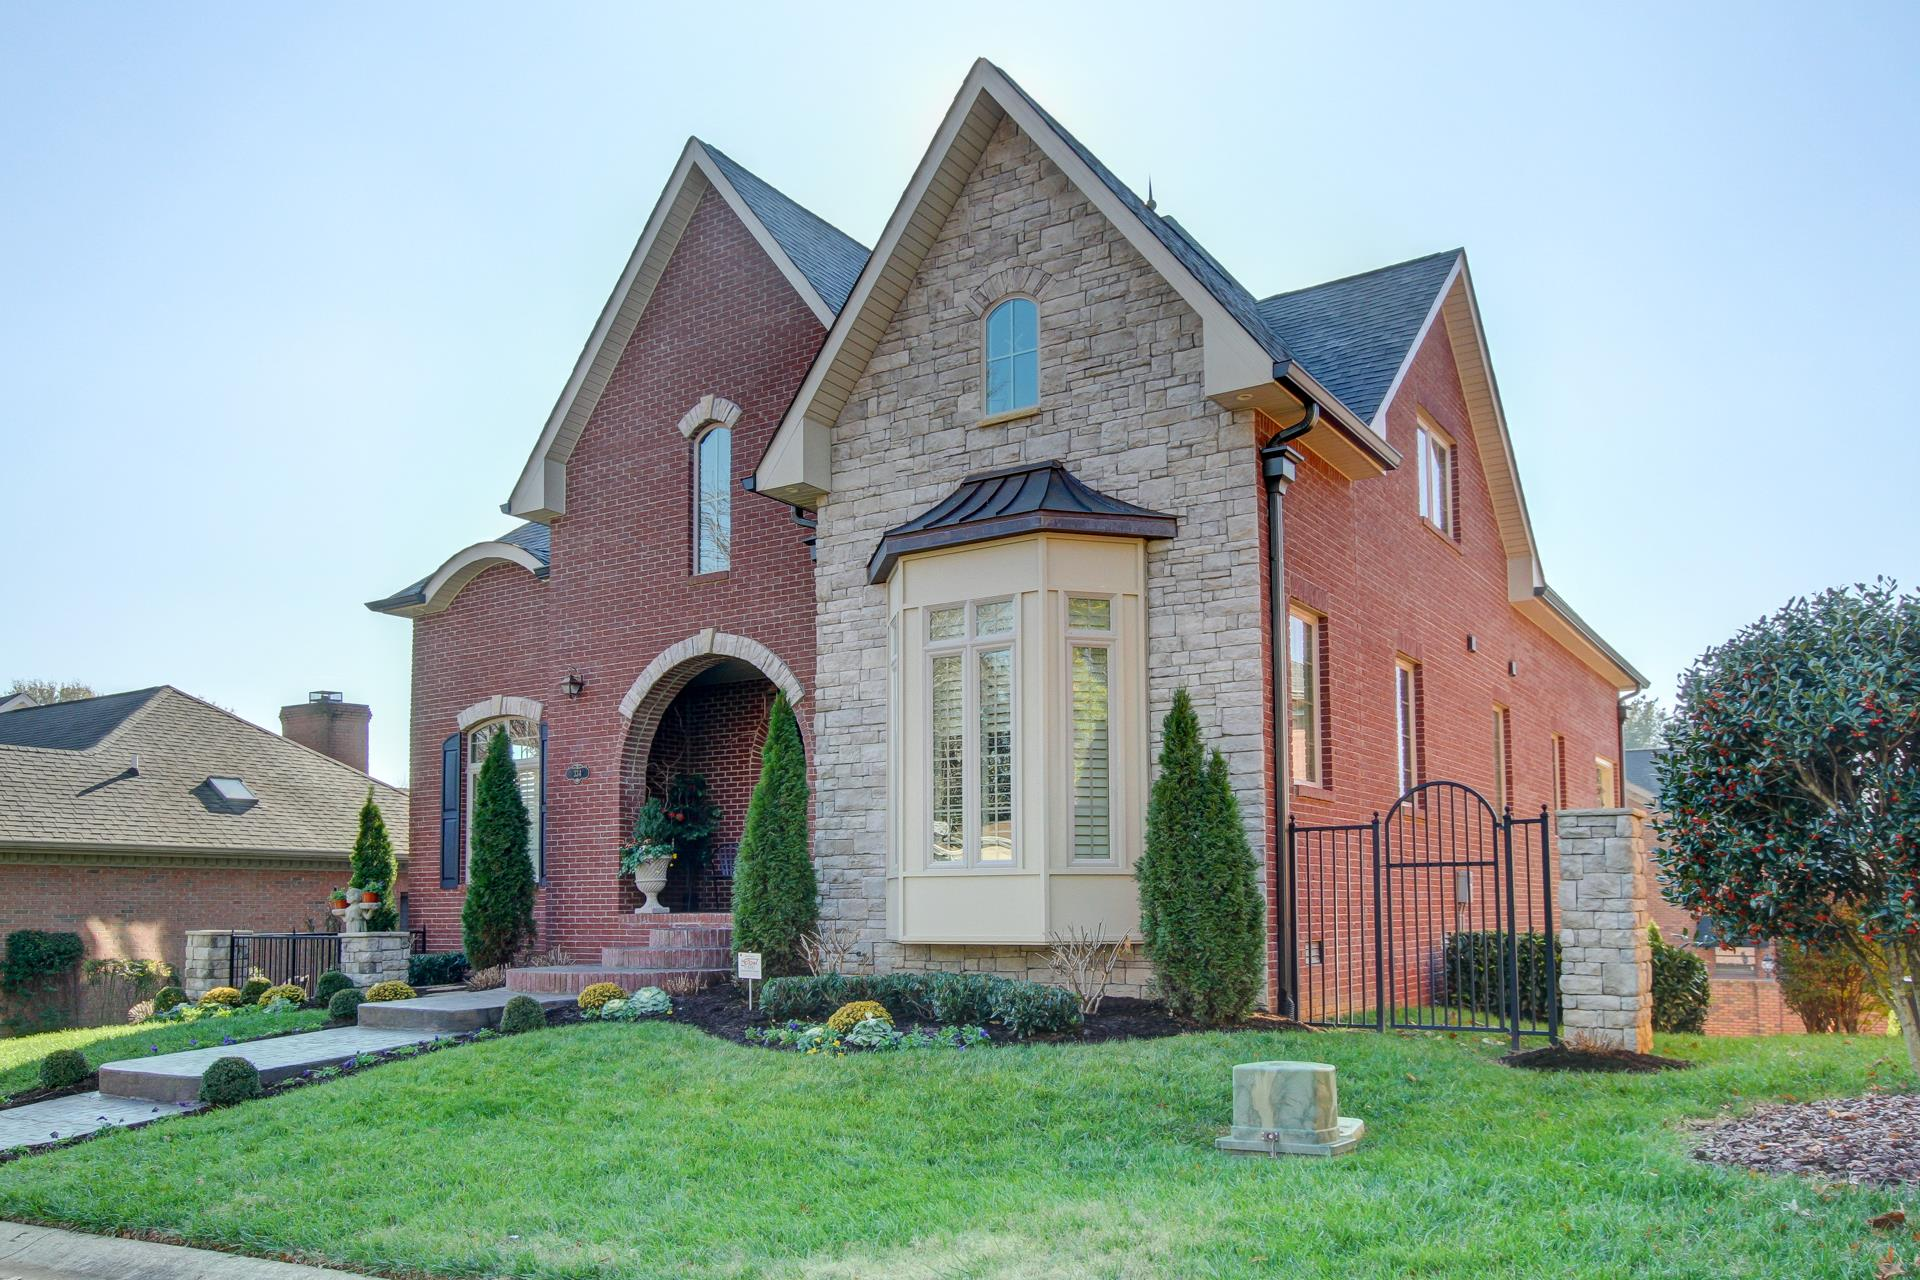 334 Peartree Dr, Clarksville, Tennessee